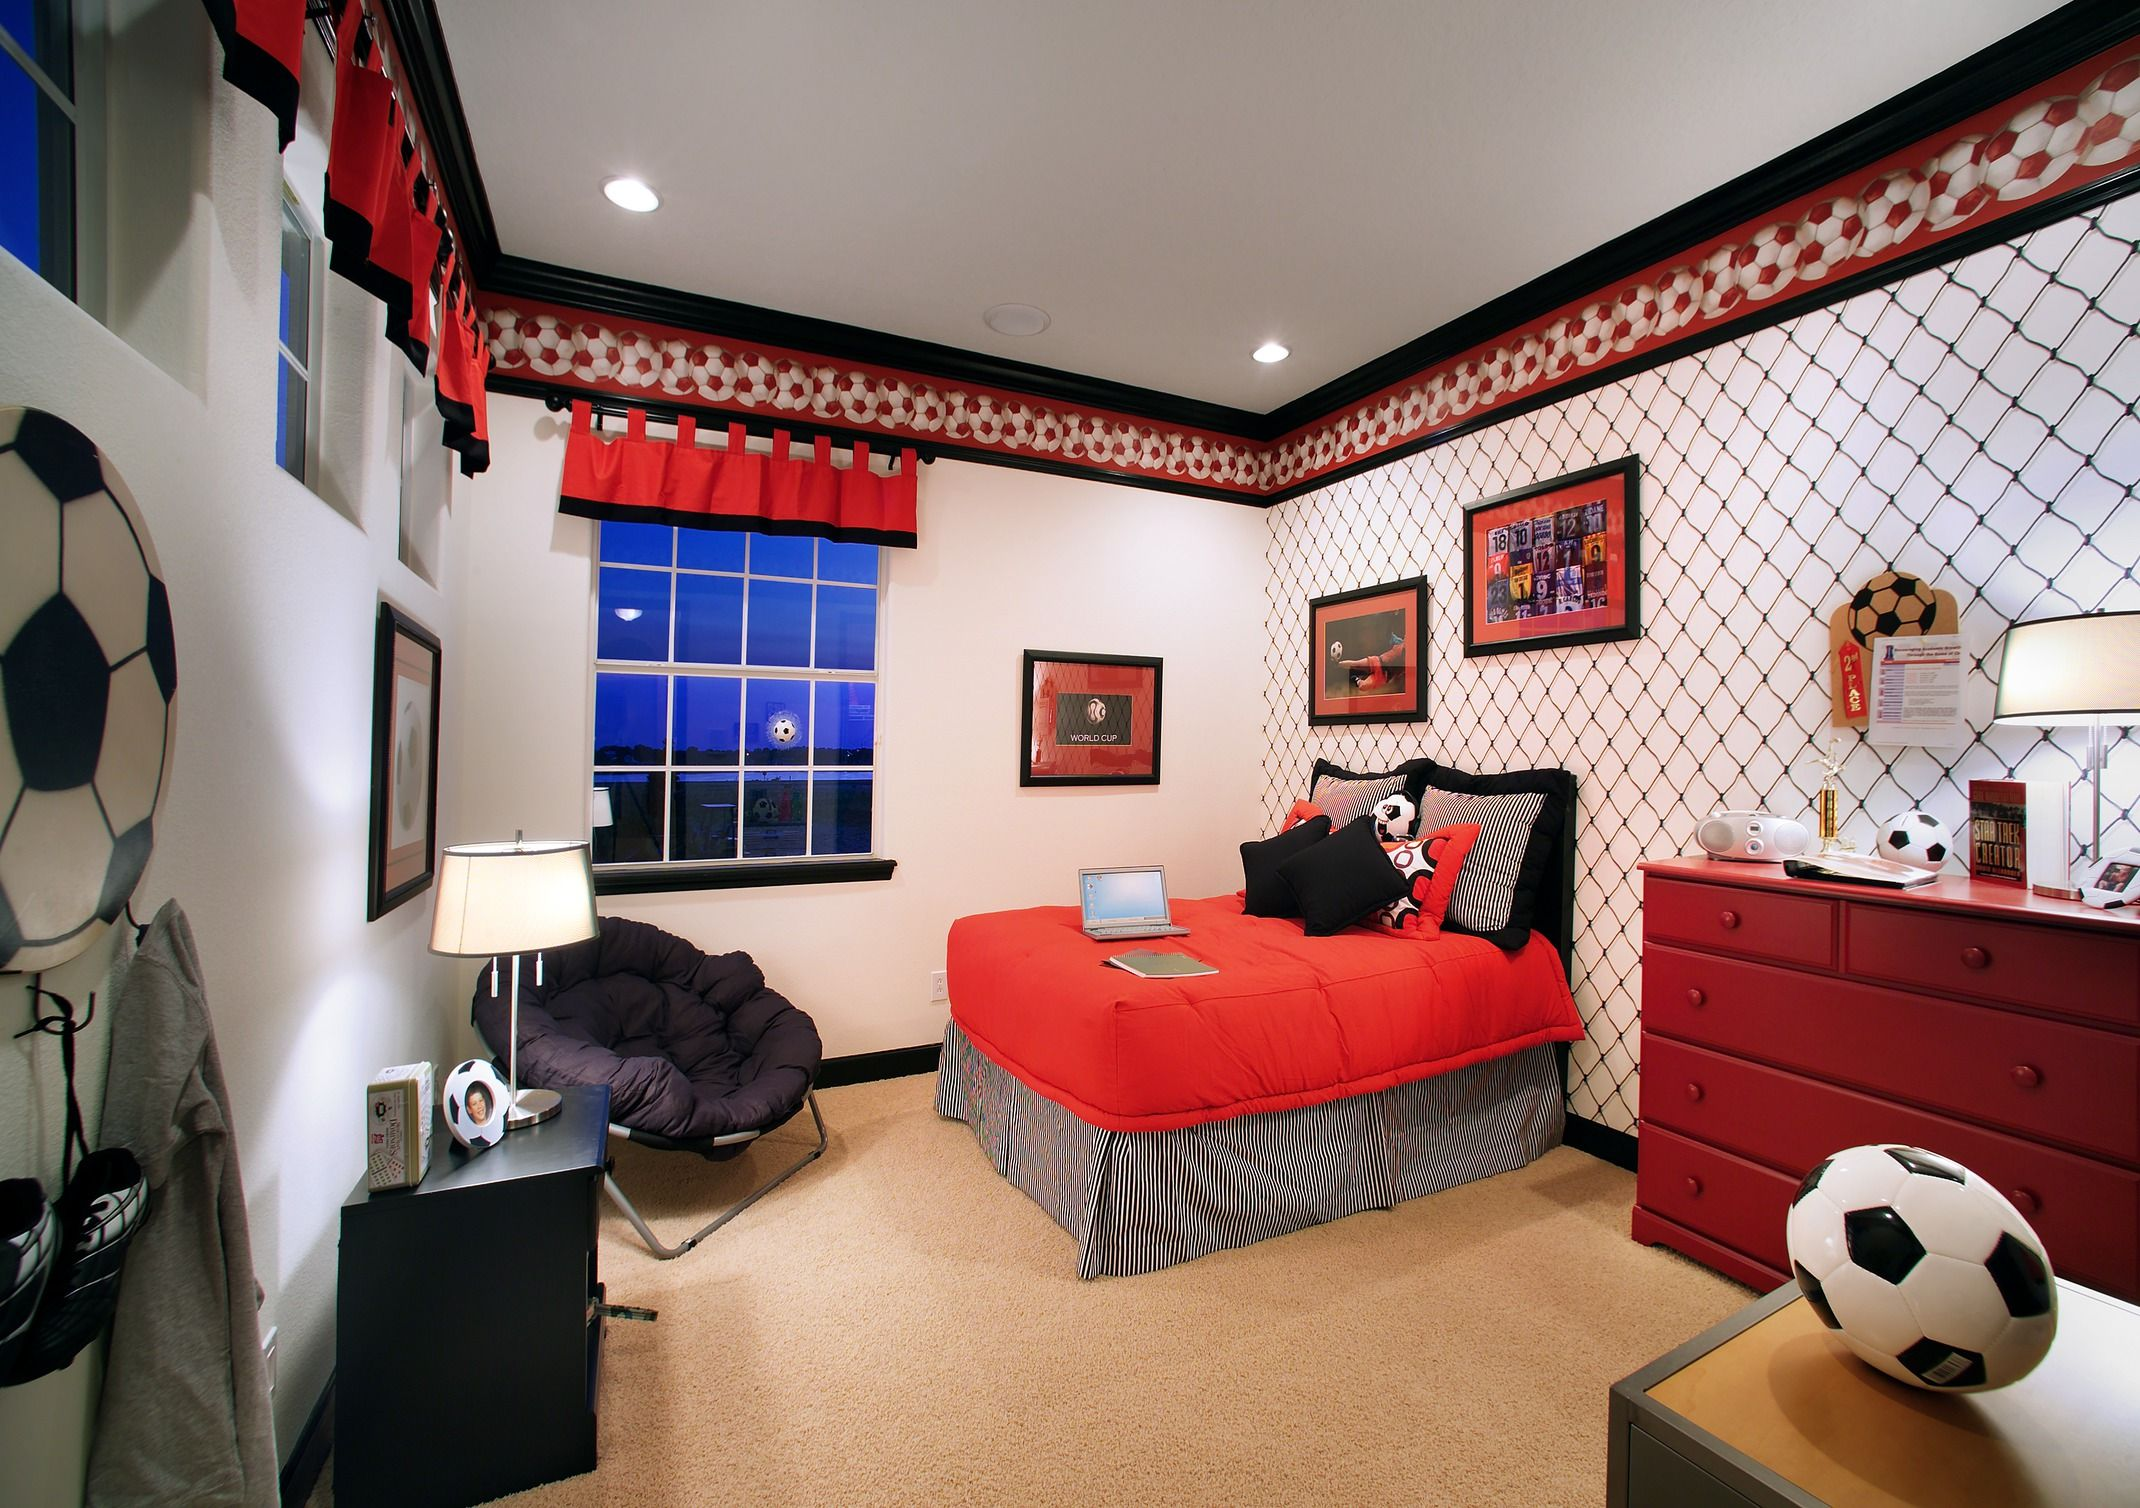 Score A Goal In This Soccer Themed Bedroom Stoncrest Lake